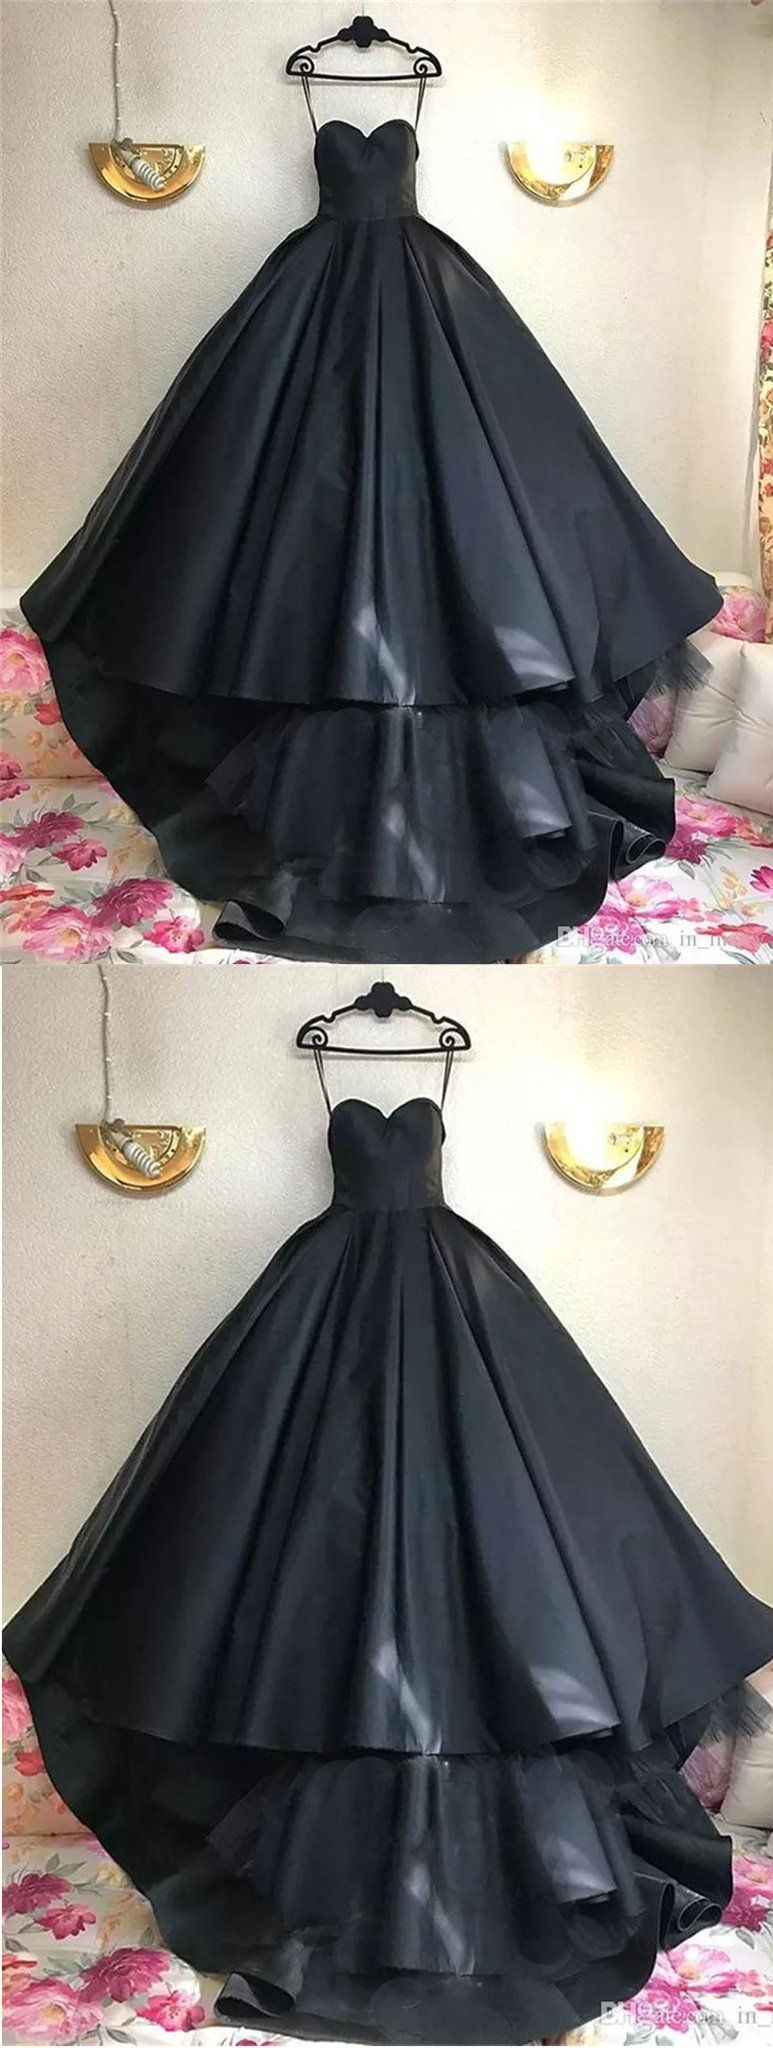 Black prom dresses ball gown sweetheart sweep train sexy prom dress